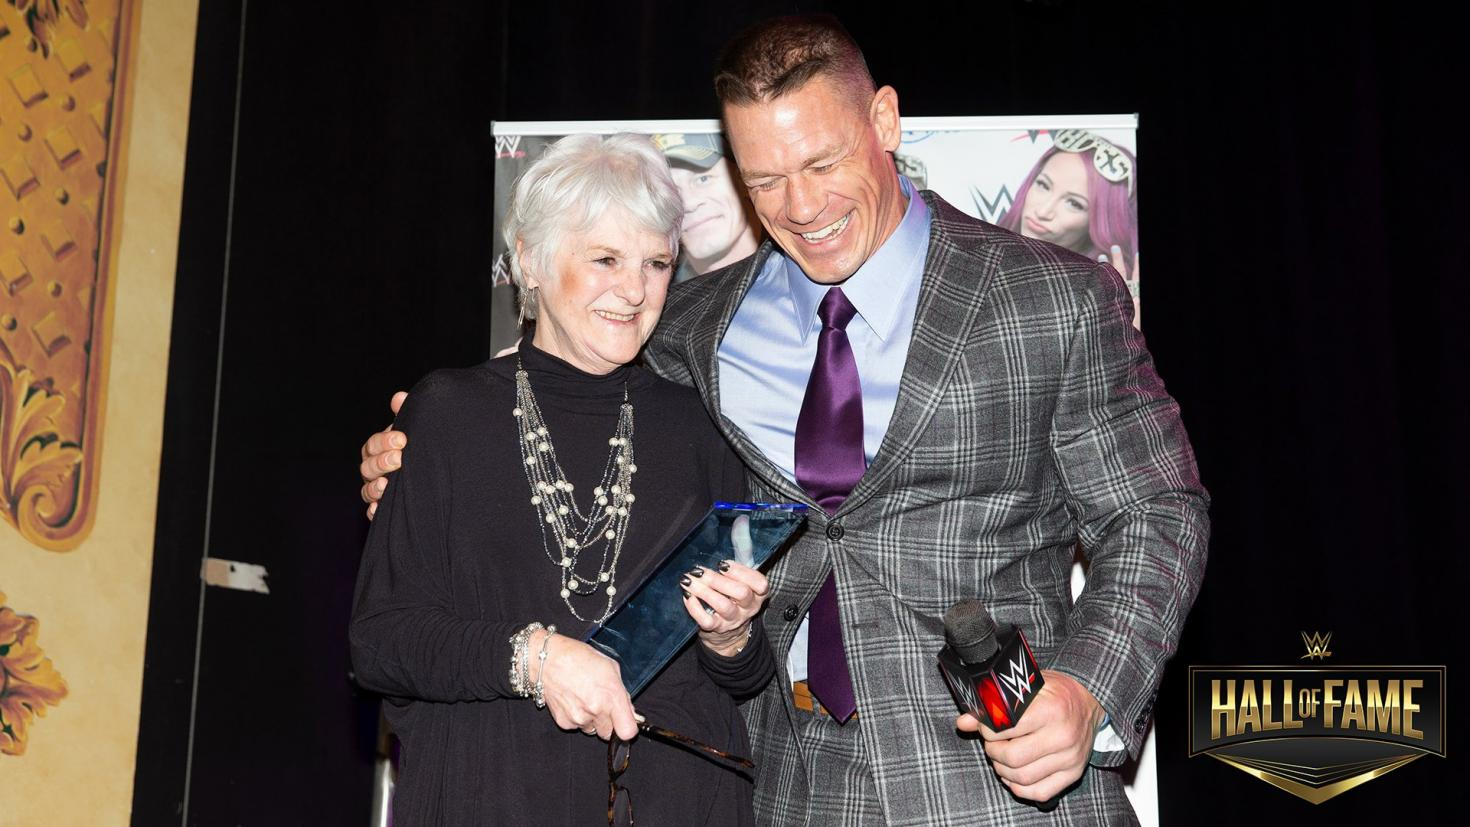 Sue Aithison and Jon Cena WWE Hall of Fame